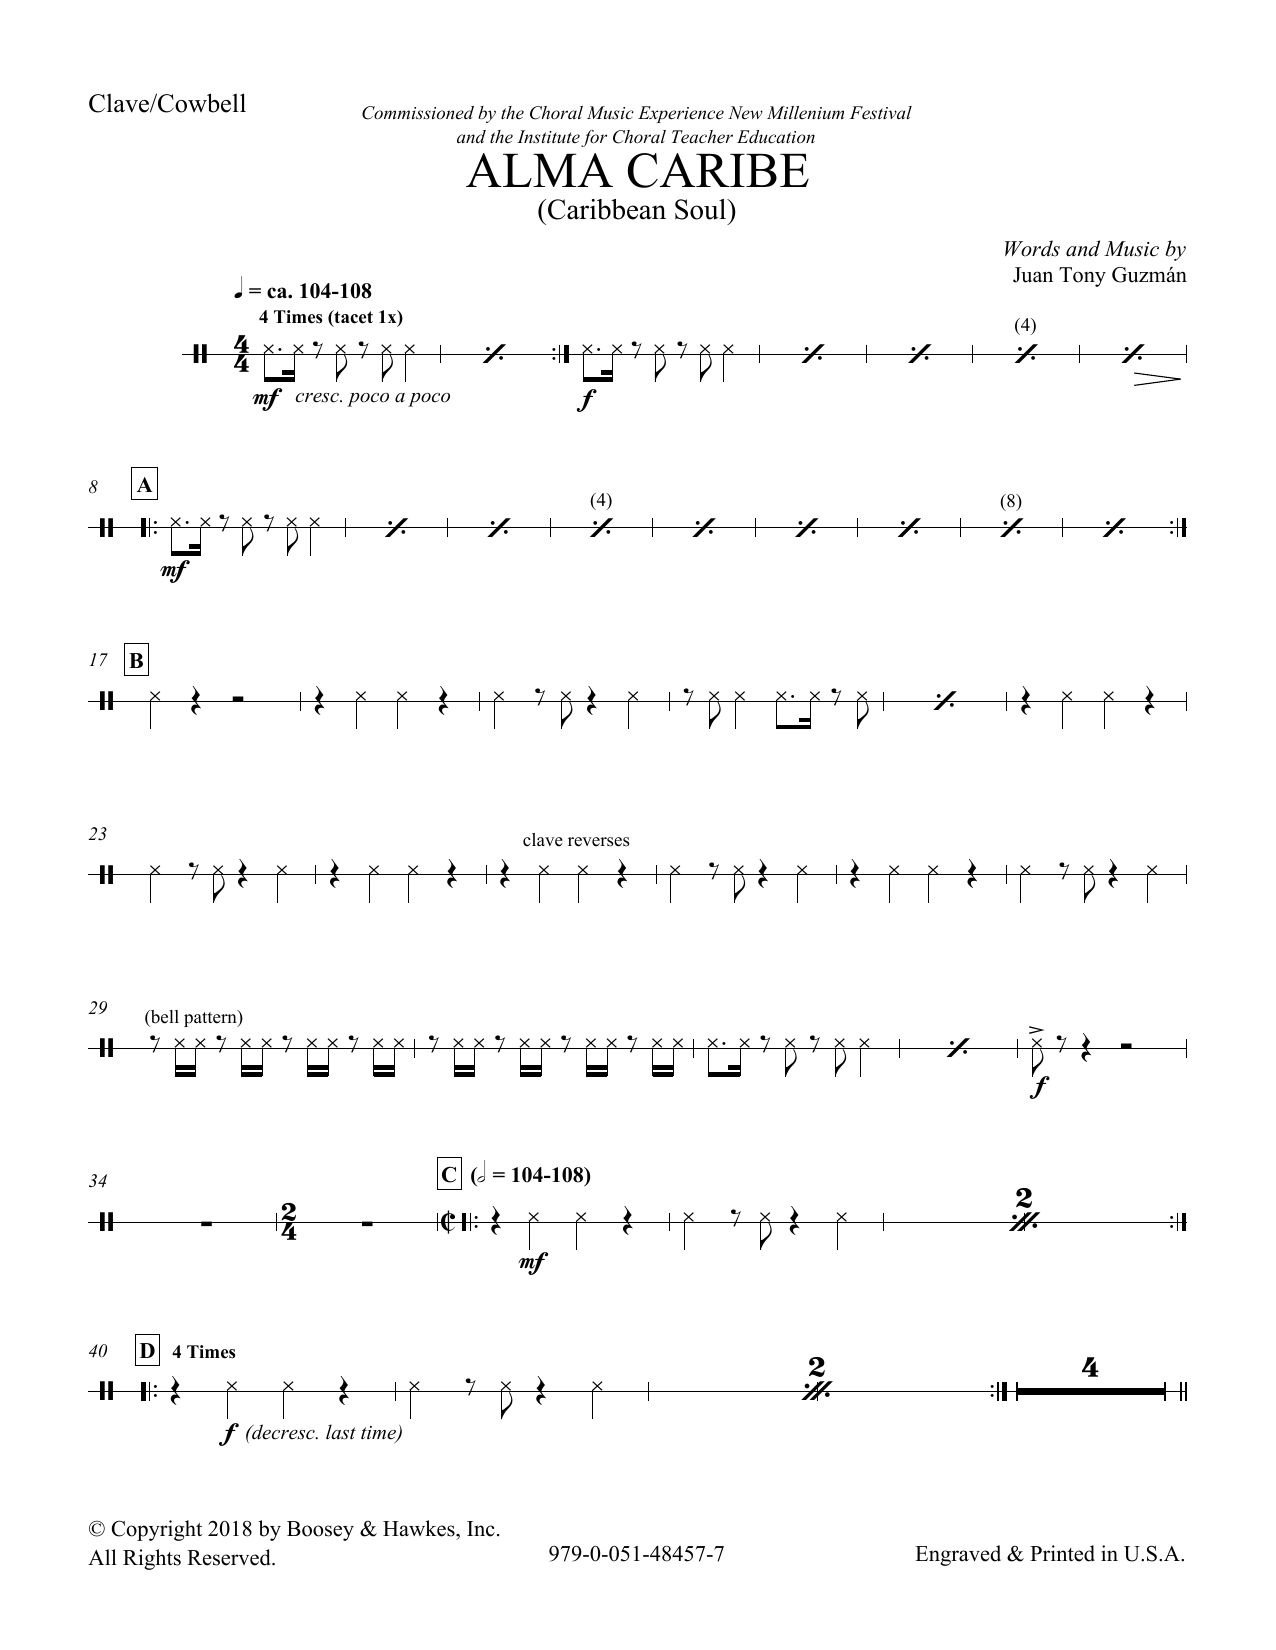 Download Juan Tony Guzman 'Alma Caribe (Caribbean Soul) - Aux Percussion' Digital Sheet Music Notes & Chords and start playing in minutes